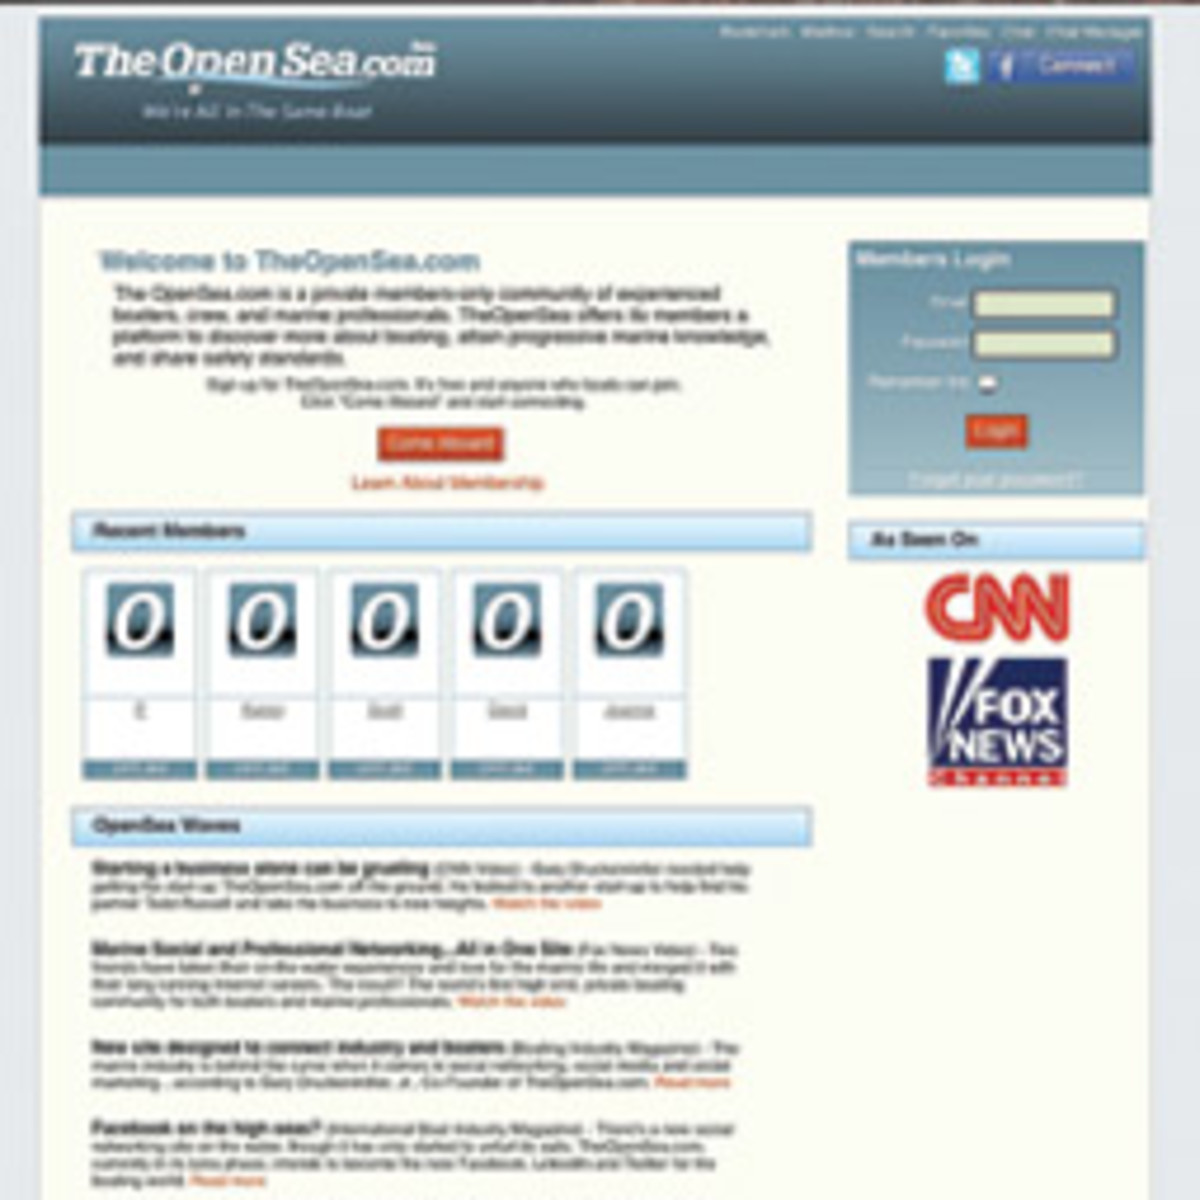 TheOpenSea.com website.